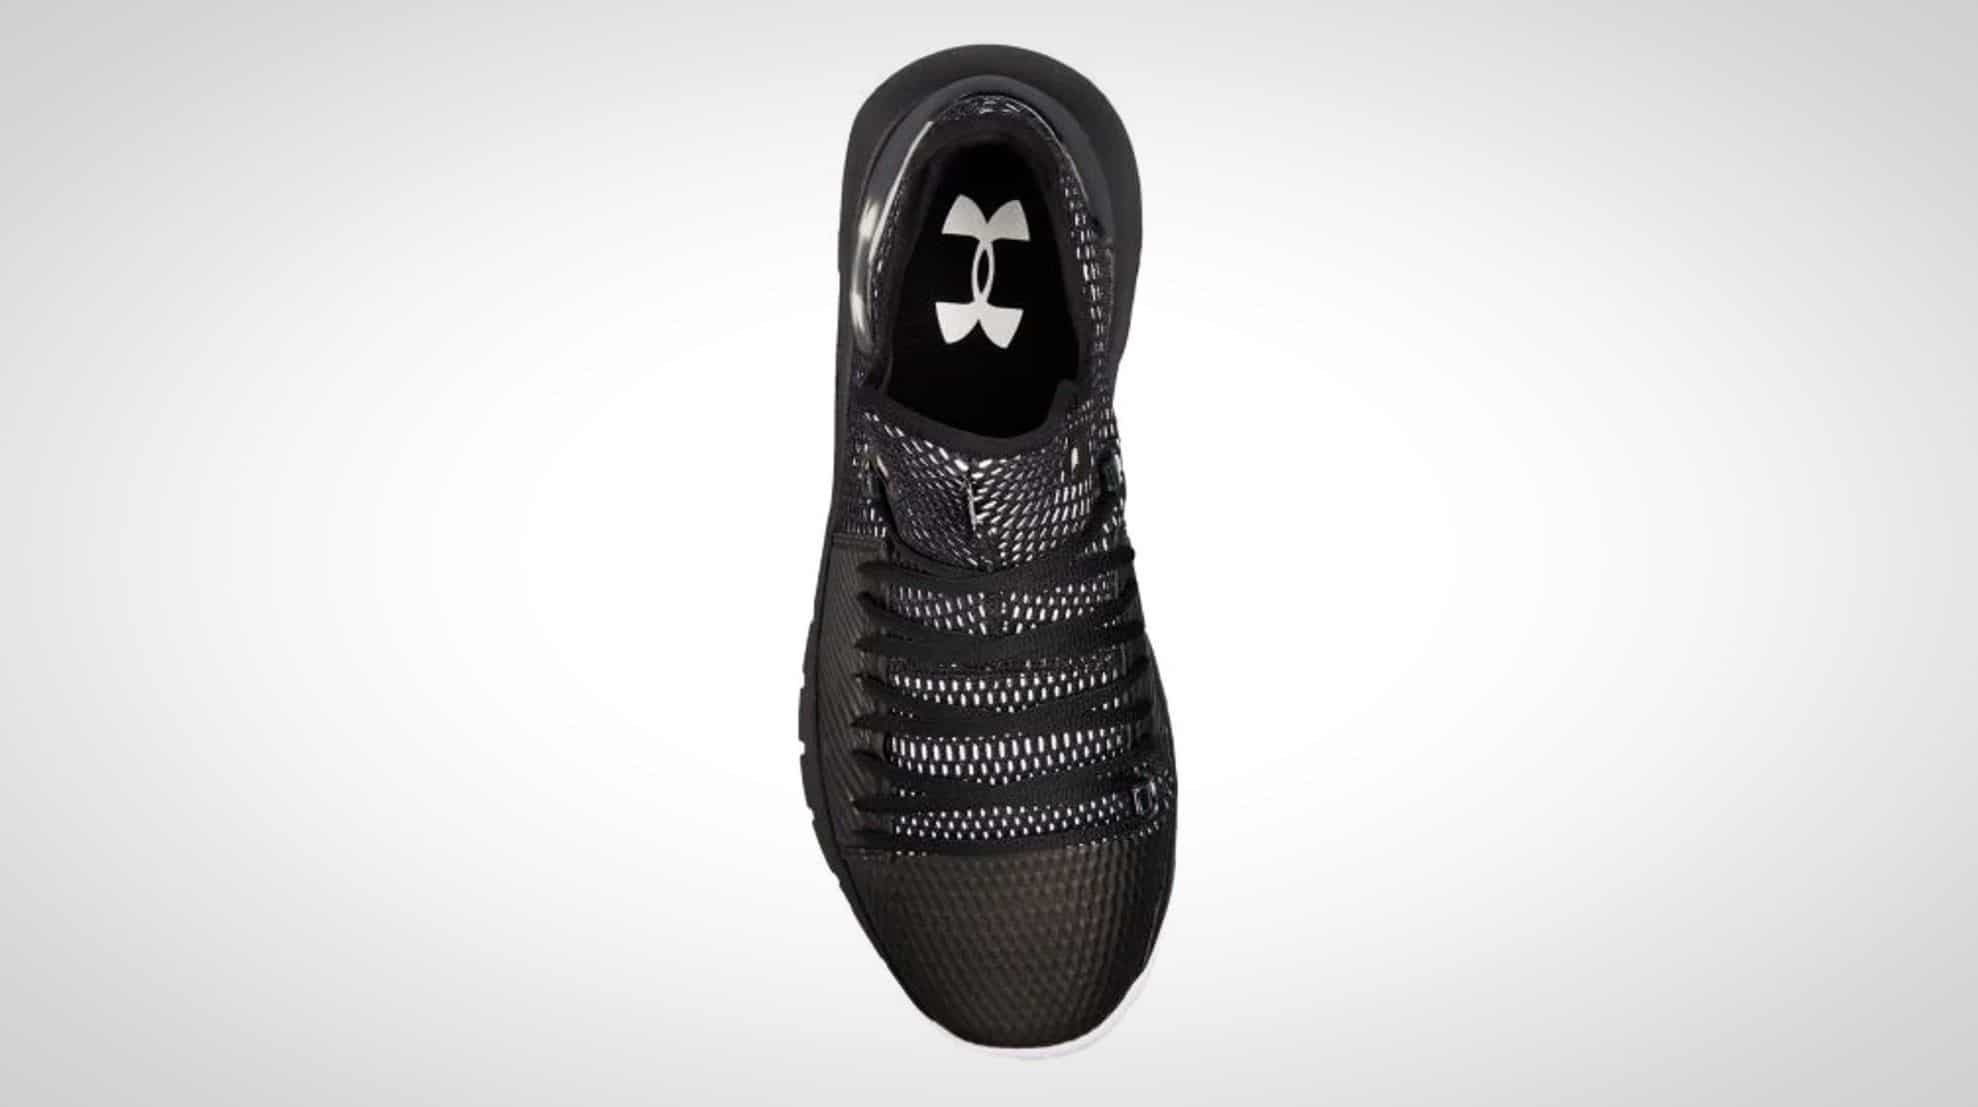 37a7b8d44fd Under Armour HOVR Havoc Low Basketball Shoe Review ...